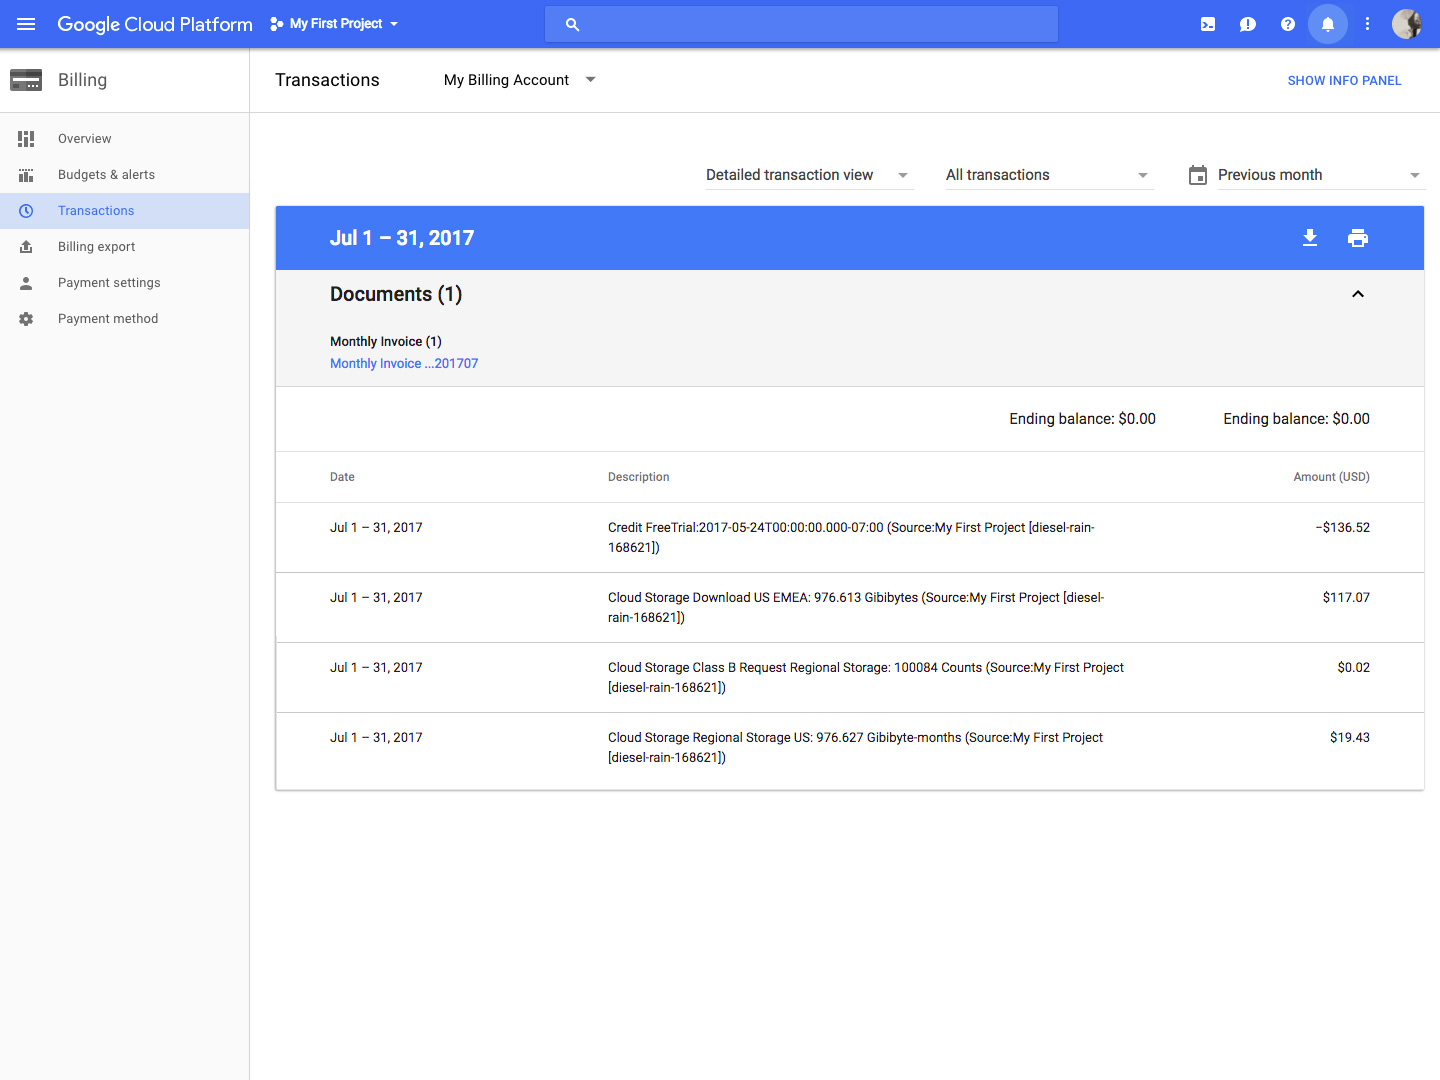 Google Cloud Storage billing details screenshot